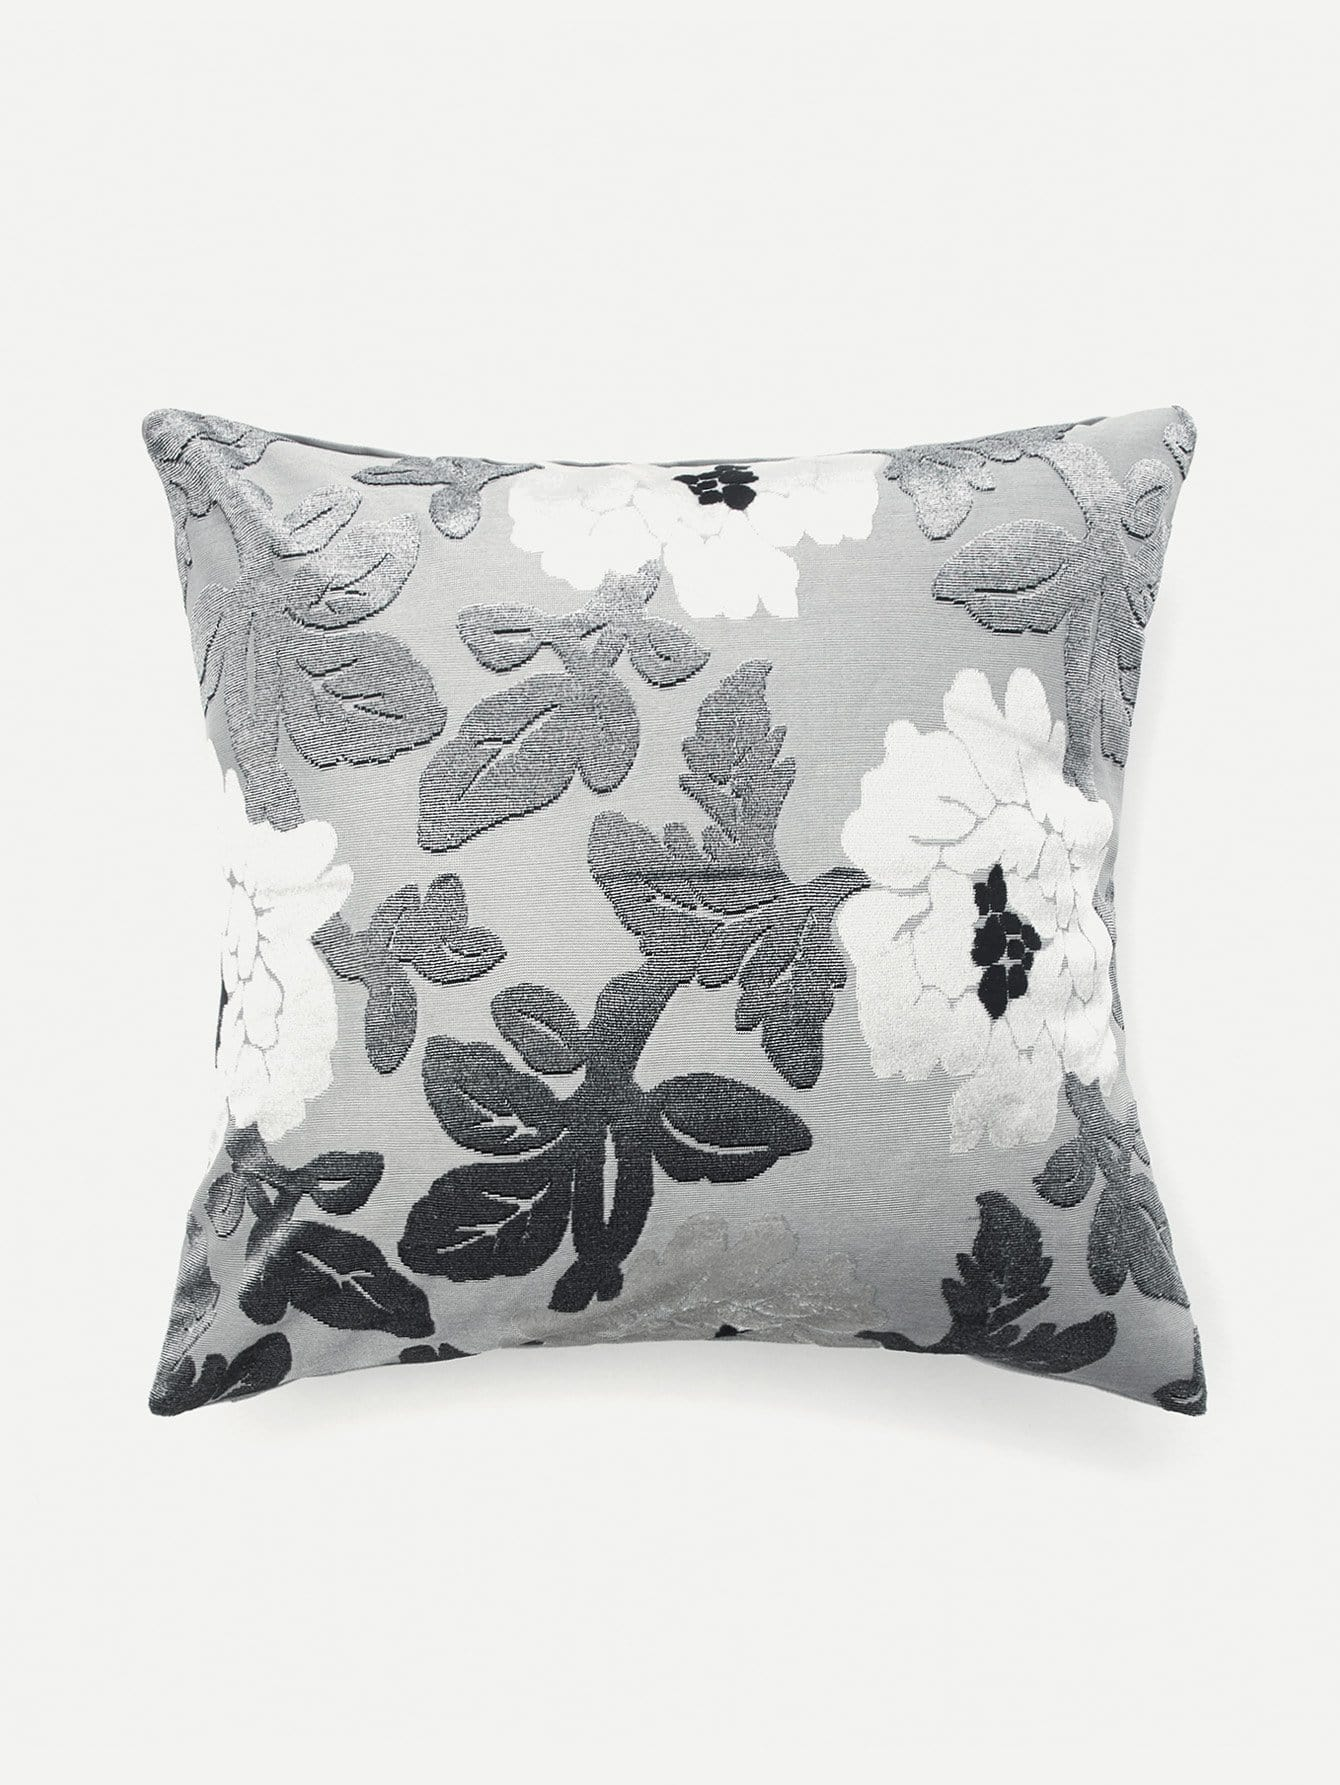 Flower Pattern Pillowcase Cover pillowcase classic style wave pattern car comfy back cushion cover